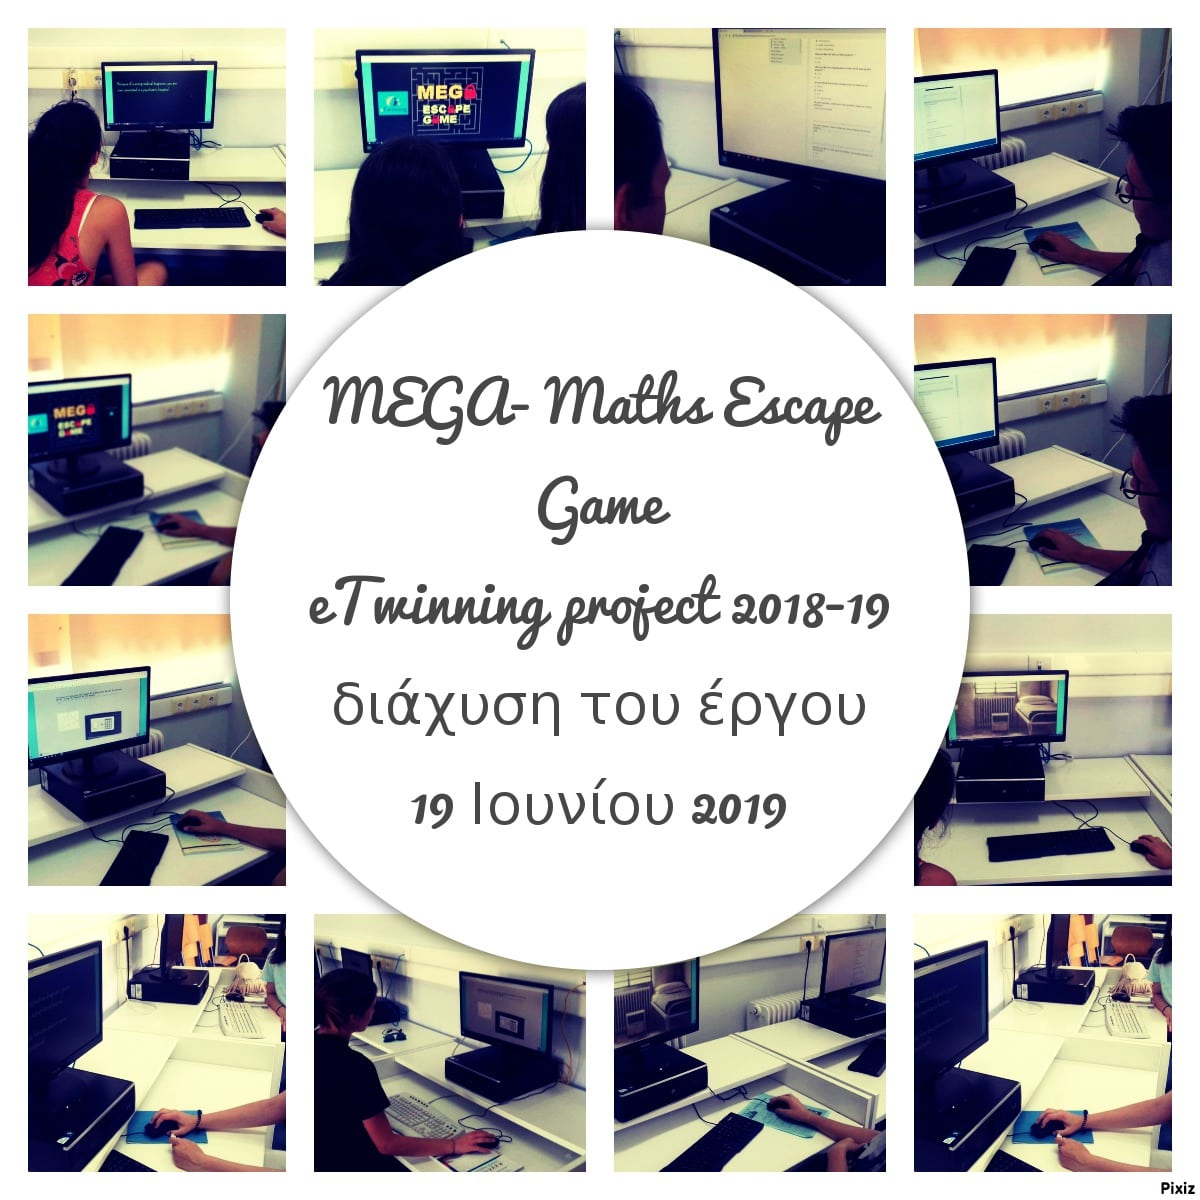 eTwinning project 2018 2019 MEGA Maths Escape Game